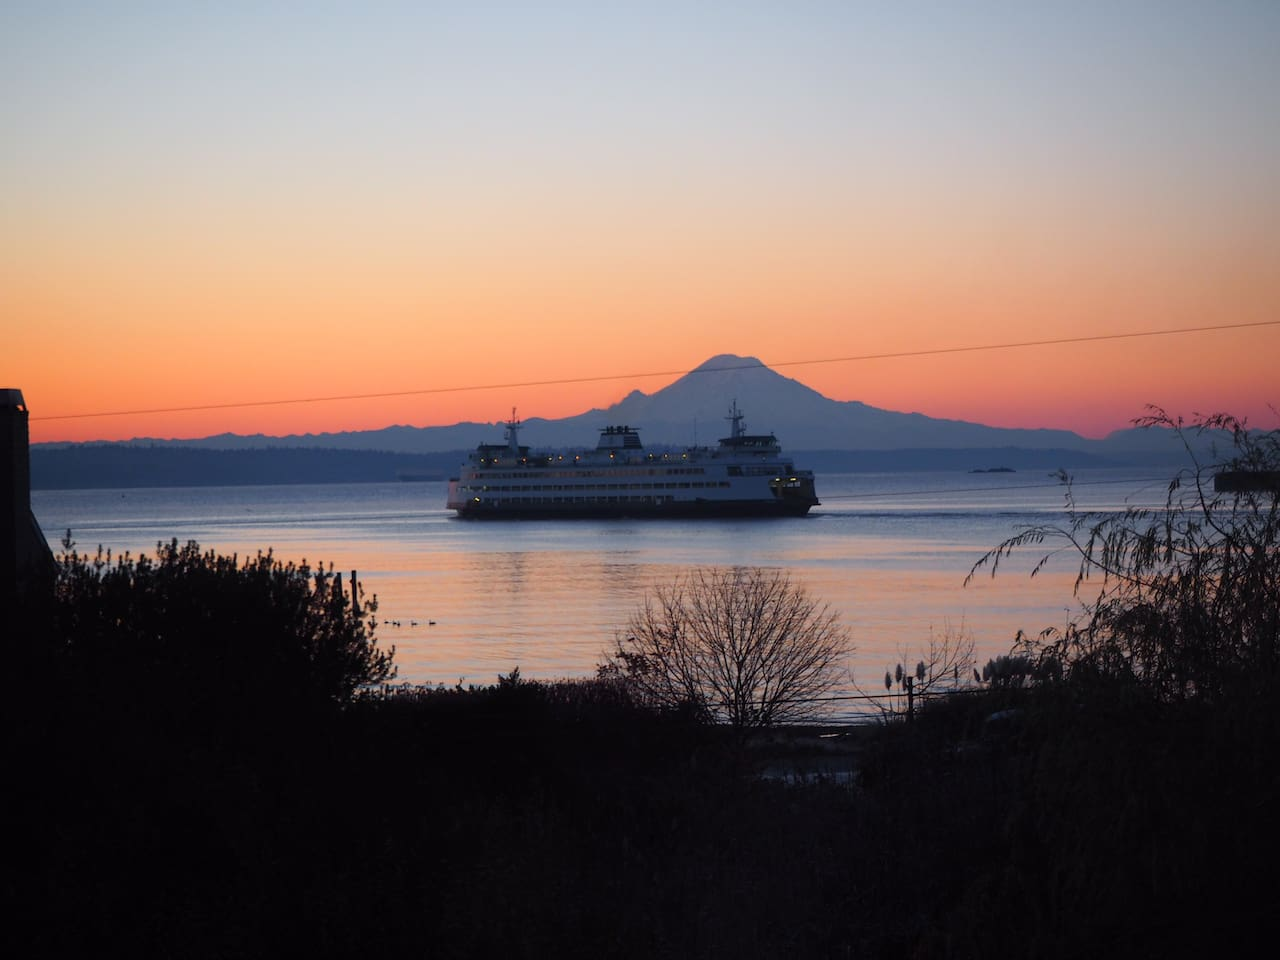 Bainbridge Island - arrive by ferry. Great views of Mt Rainier from many places